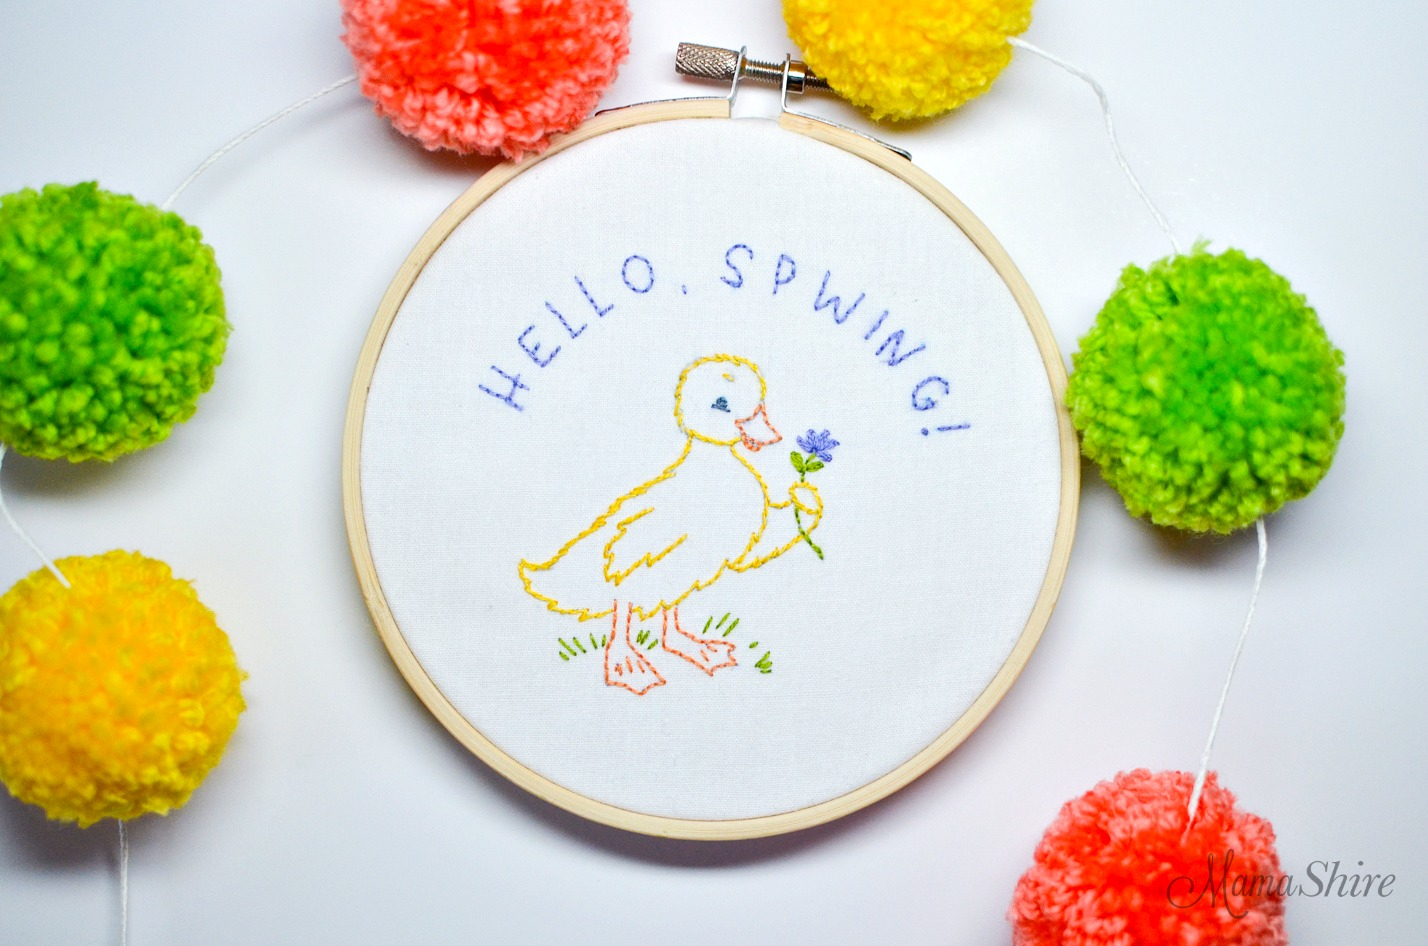 Embroidery For Beginners Free Patterns Free Embroidery Pattern For Spring Hello Spwing Mamashire